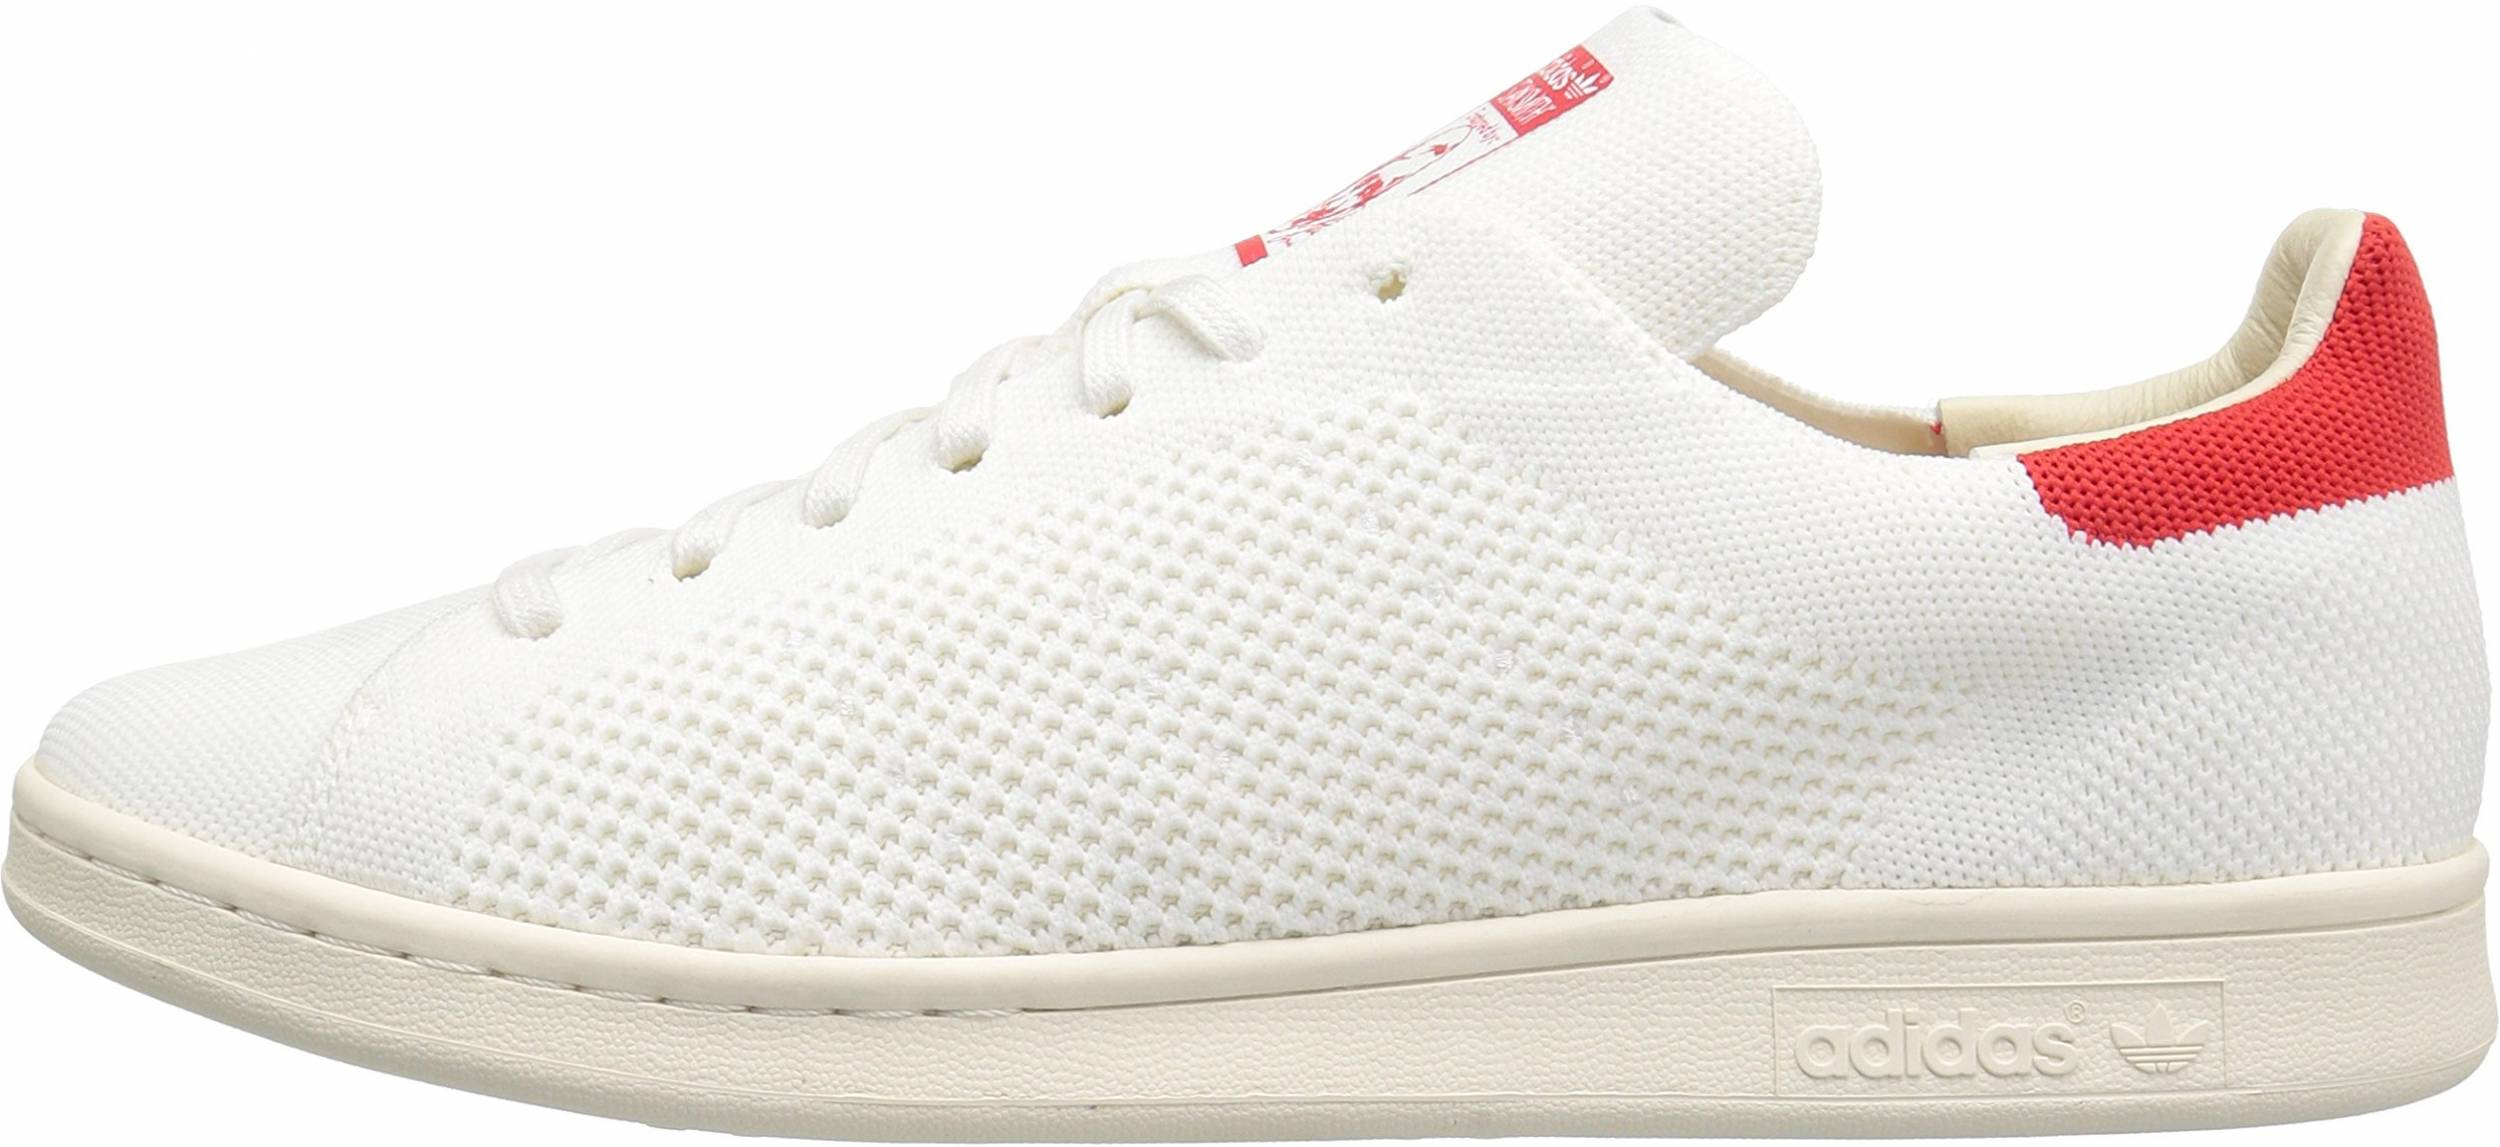 experimental Pack para poner Algún día  Adidas Stan Smith OG Primeknit sneakers (only $55) | RunRepeat